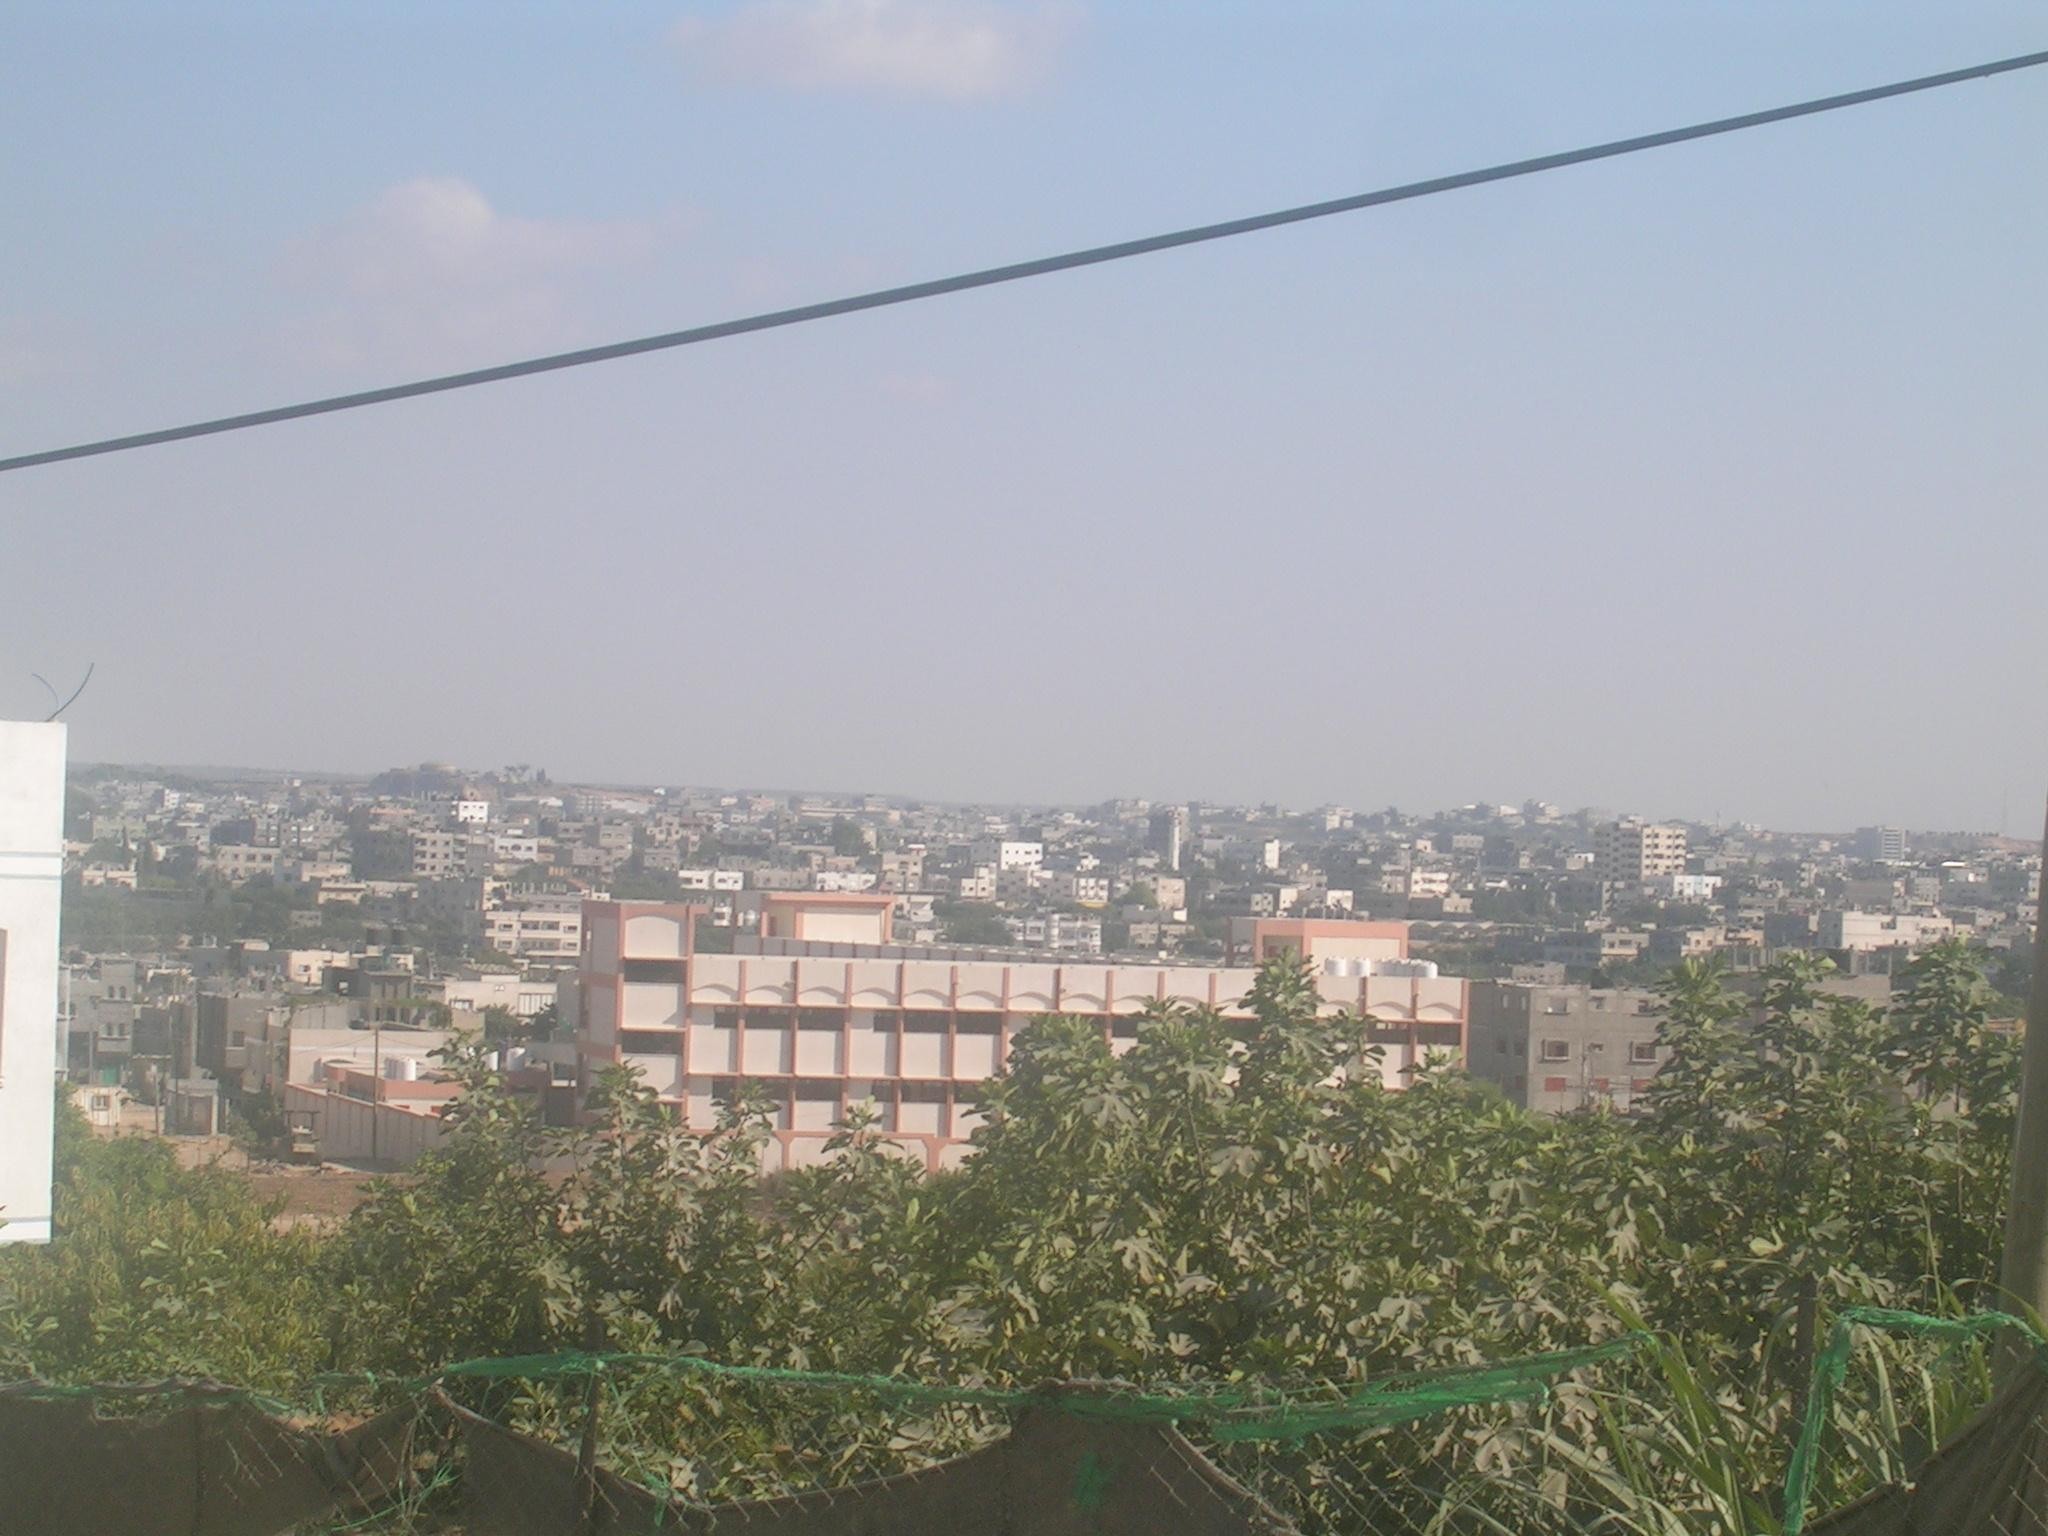 Picture for Jabalya R.C. Camp - Palestine: : General View with Bayt Hanoun